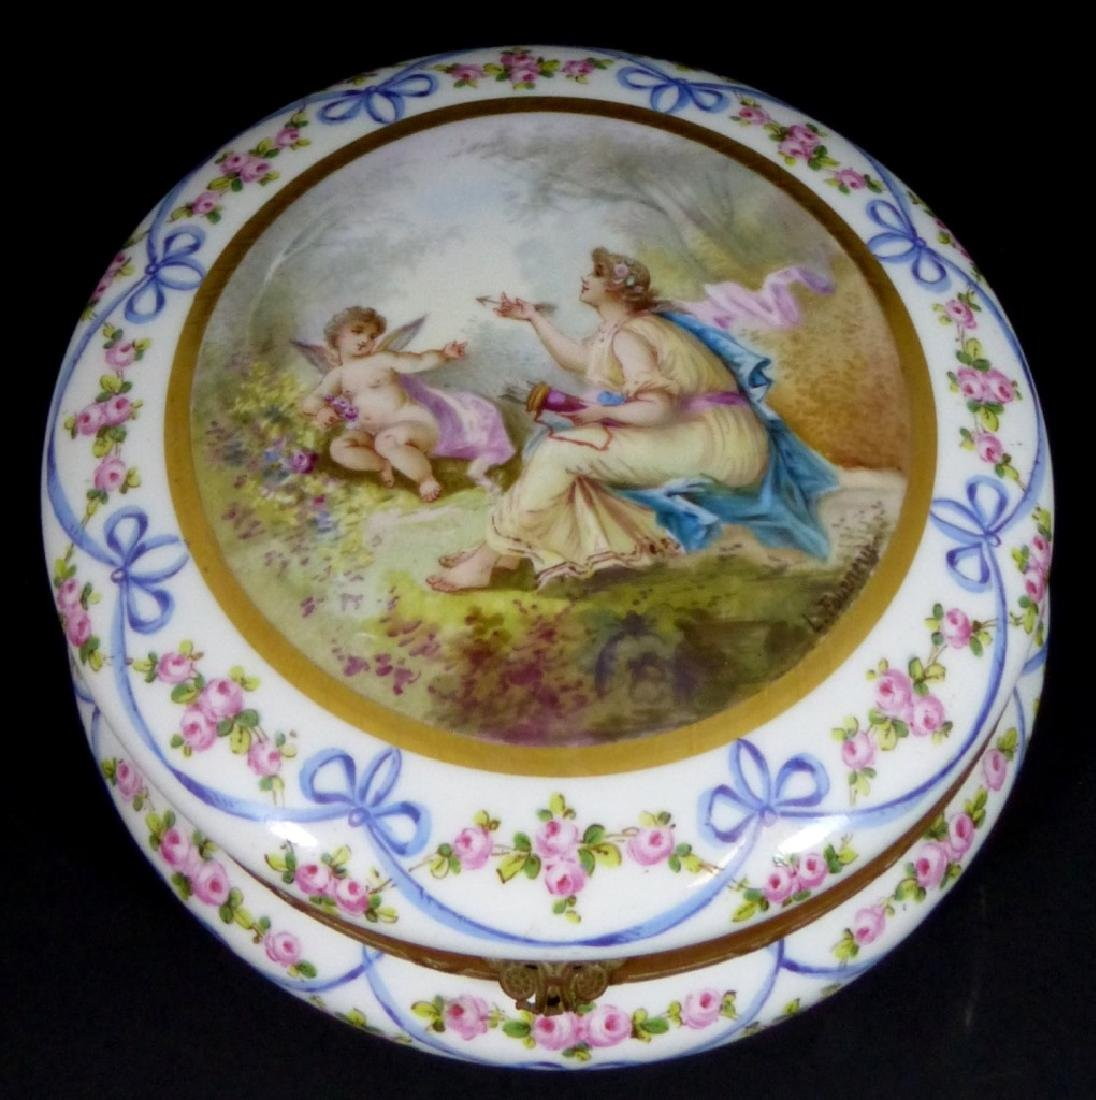 SEVRES STYLE FRENCH PORCELAIN LARGE ROUND BOX